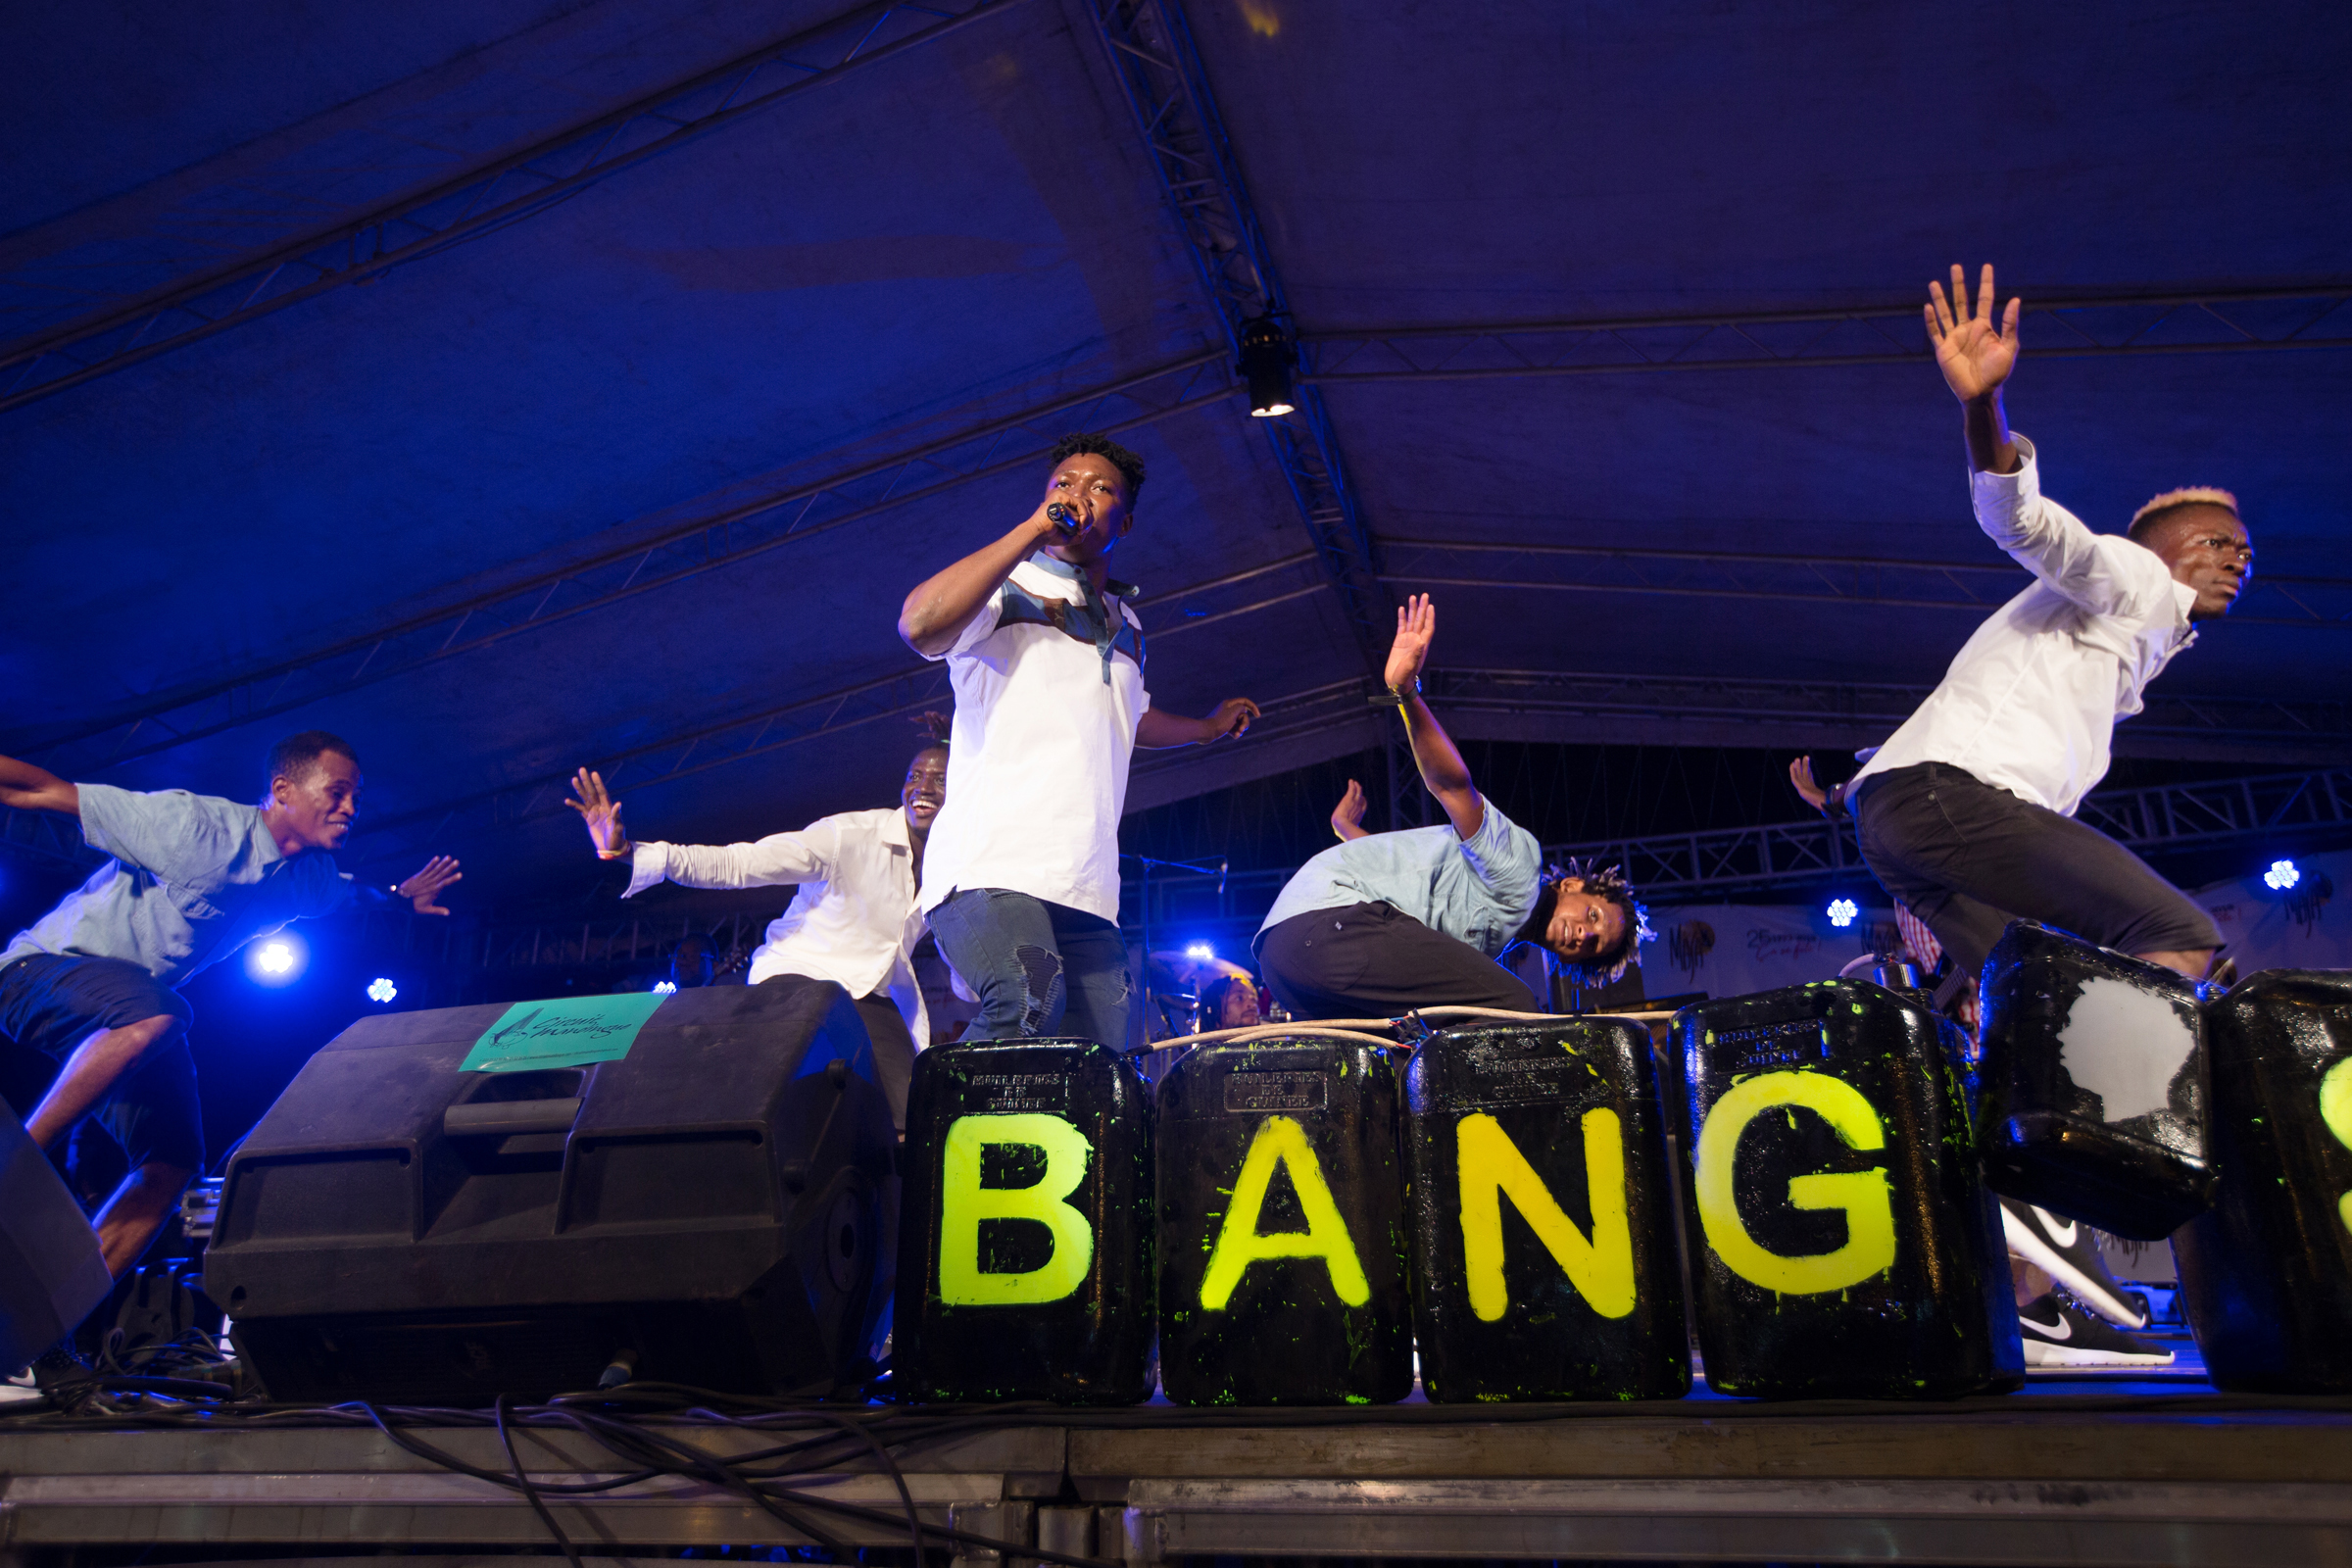 Soul Bangs, from Guinee Conakry led by singer Souleymane Bangoura, performing at the 2018 MASA festival. Old car tires were strewn across the stage and gas containers painted black with flourescent yellow spelling out the bands name. Behind Souleymane, four male dancers zig-zagged loosely choreographed routines, while the musicians stayed in the shadows laying down keyboard laden afro-soul grooves. Judging by the number of faans that breached the barriers and mobbed the performers backstage their upbeat and unpretentious personality is making waves beyond Guinee.